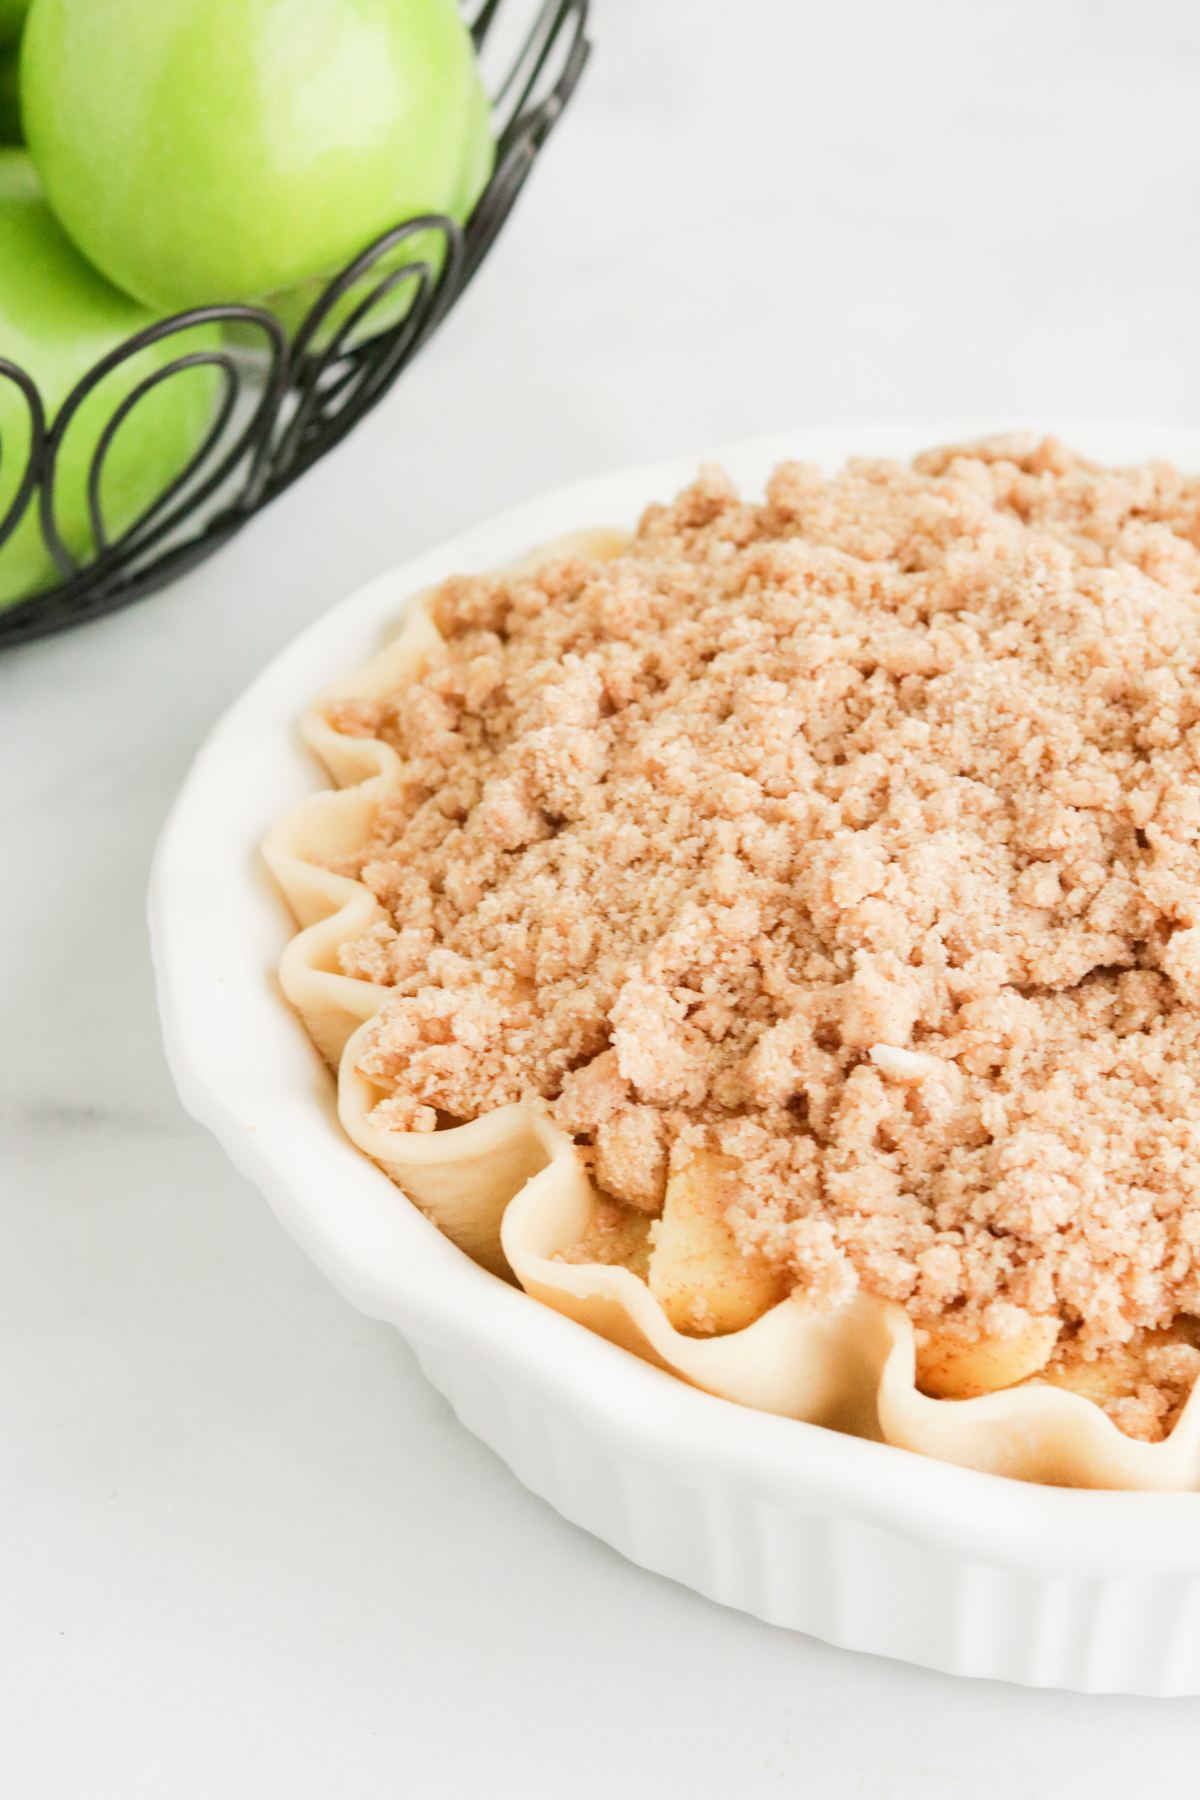 Crumble topping added to top of pie.